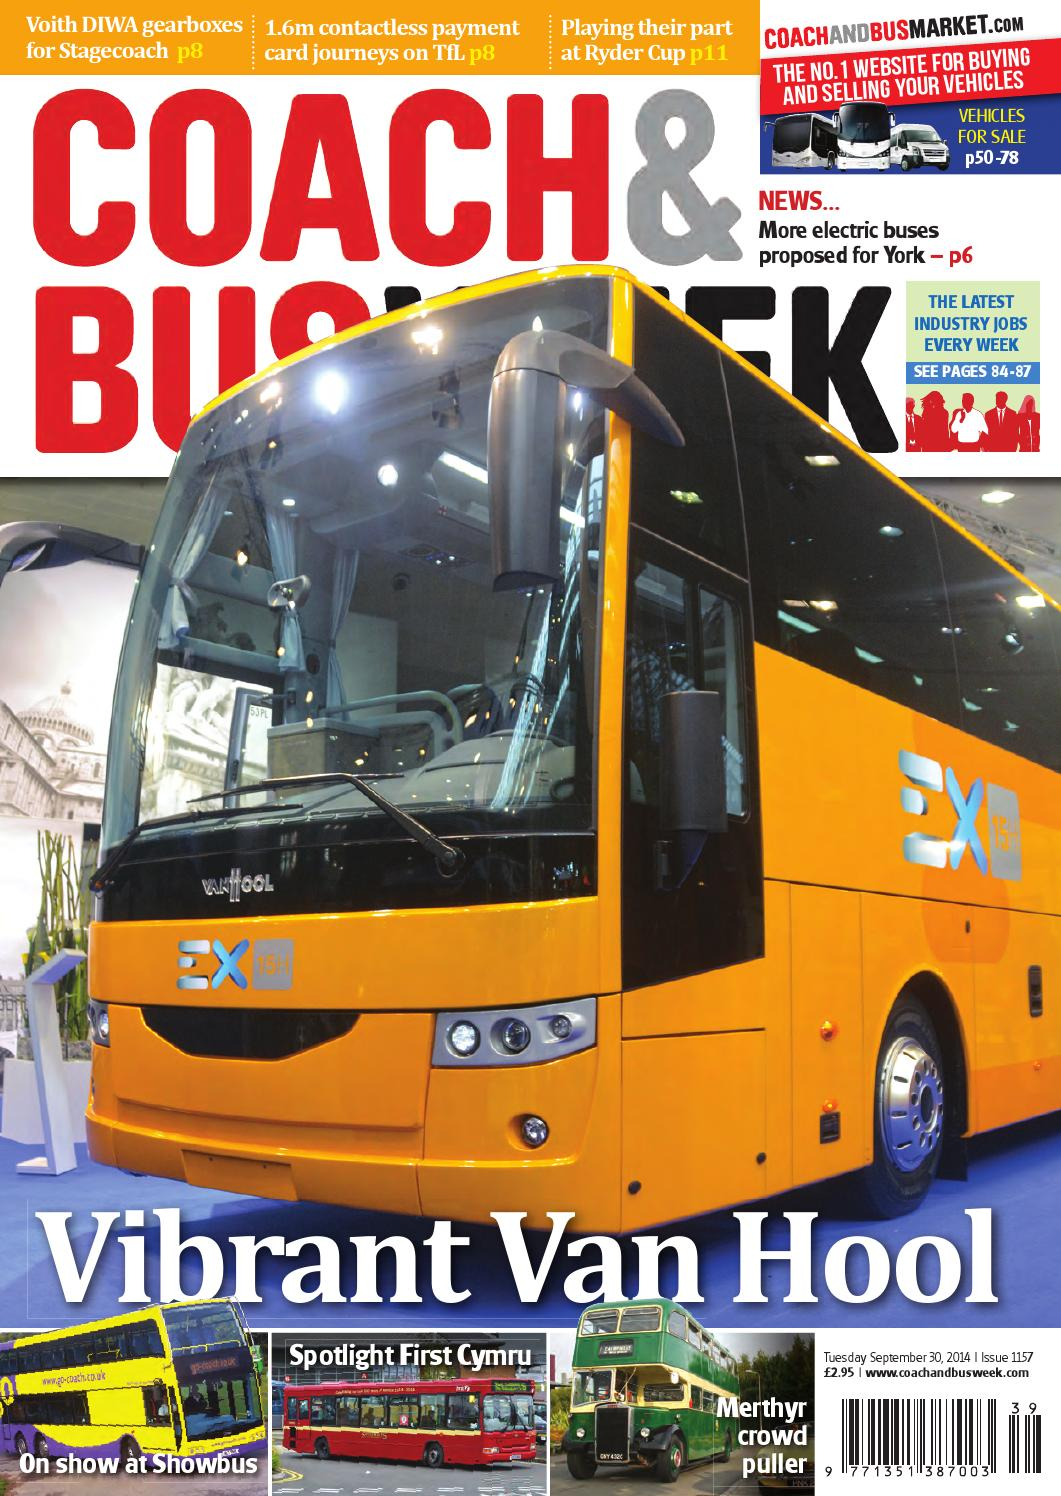 Coach bus week issue 1157 by coach and bus week group travel coach bus week issue 1157 by coach and bus week group travel world issuu falaconquin